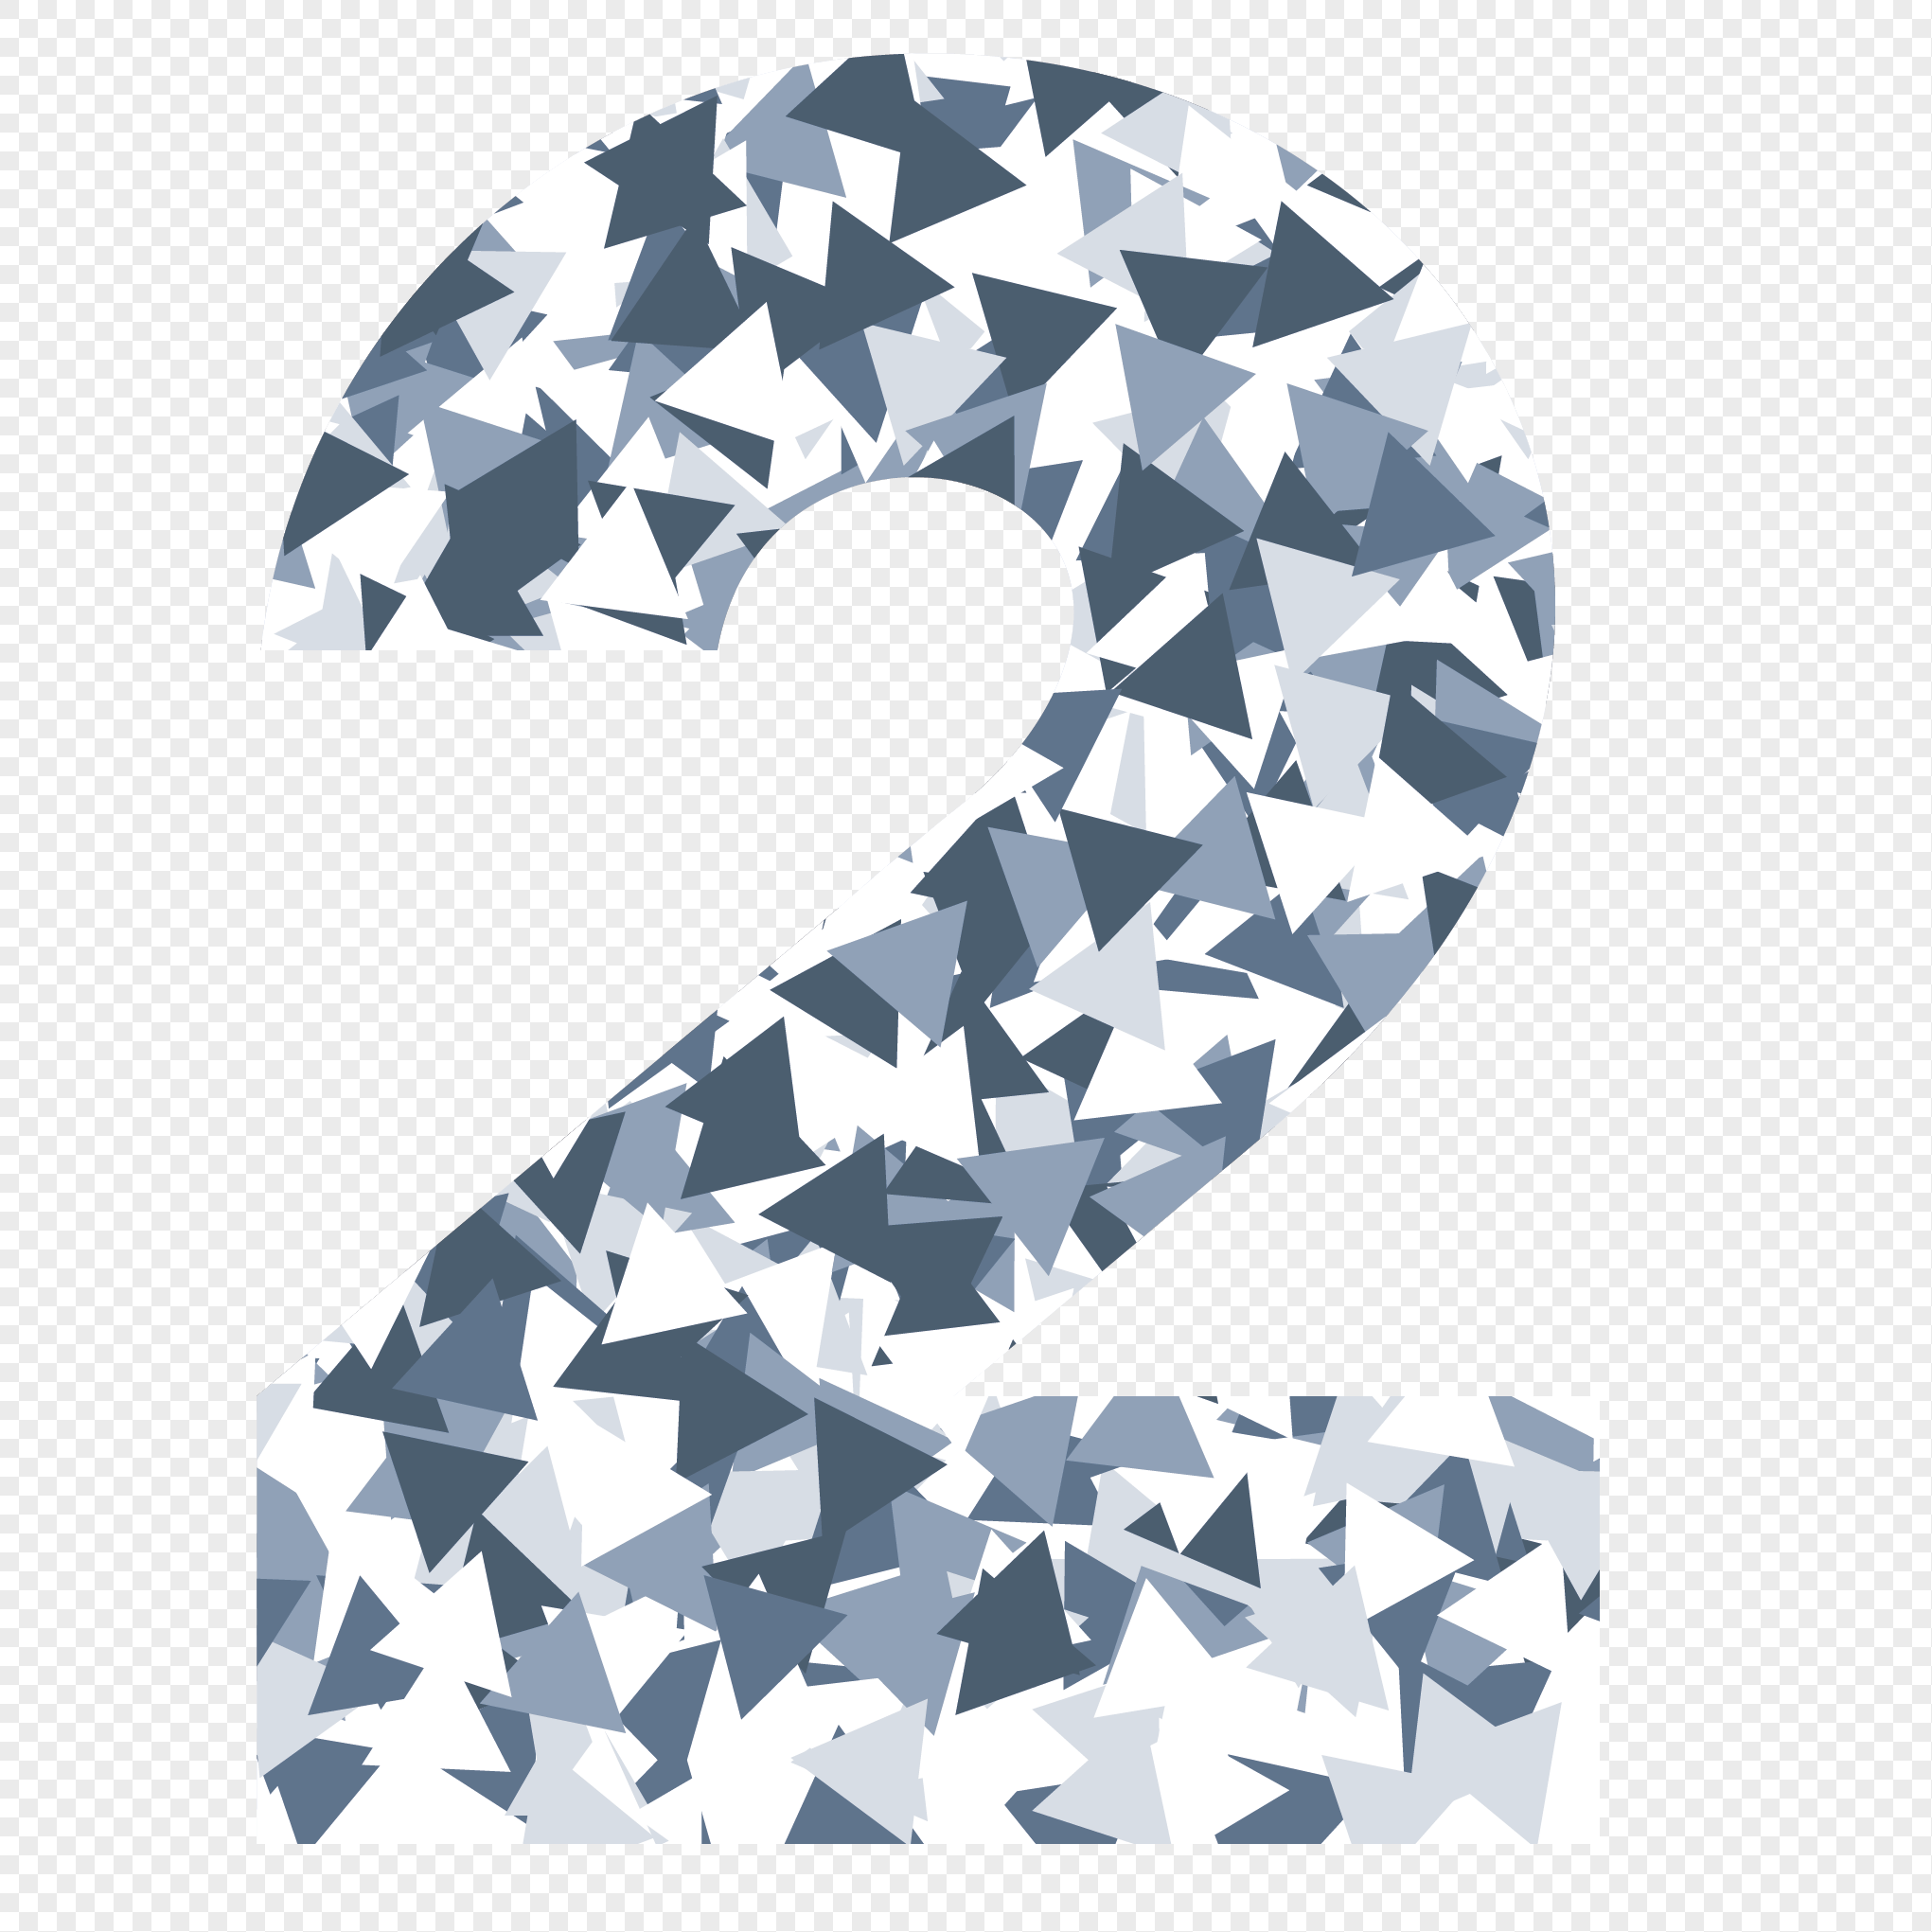 2041x2041 Lattice Diamond Number 2 Vector Element Png Image Picture Free